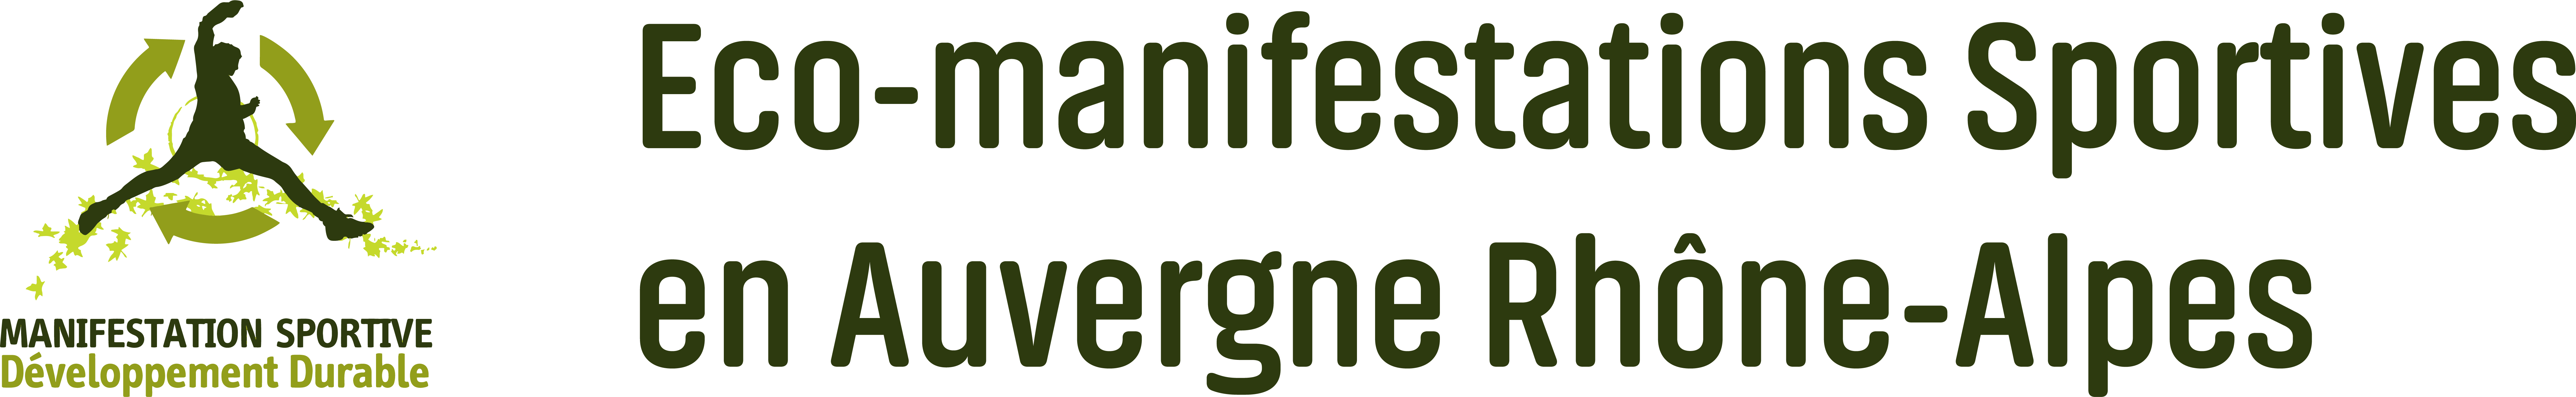 Logo Eco-manifestation